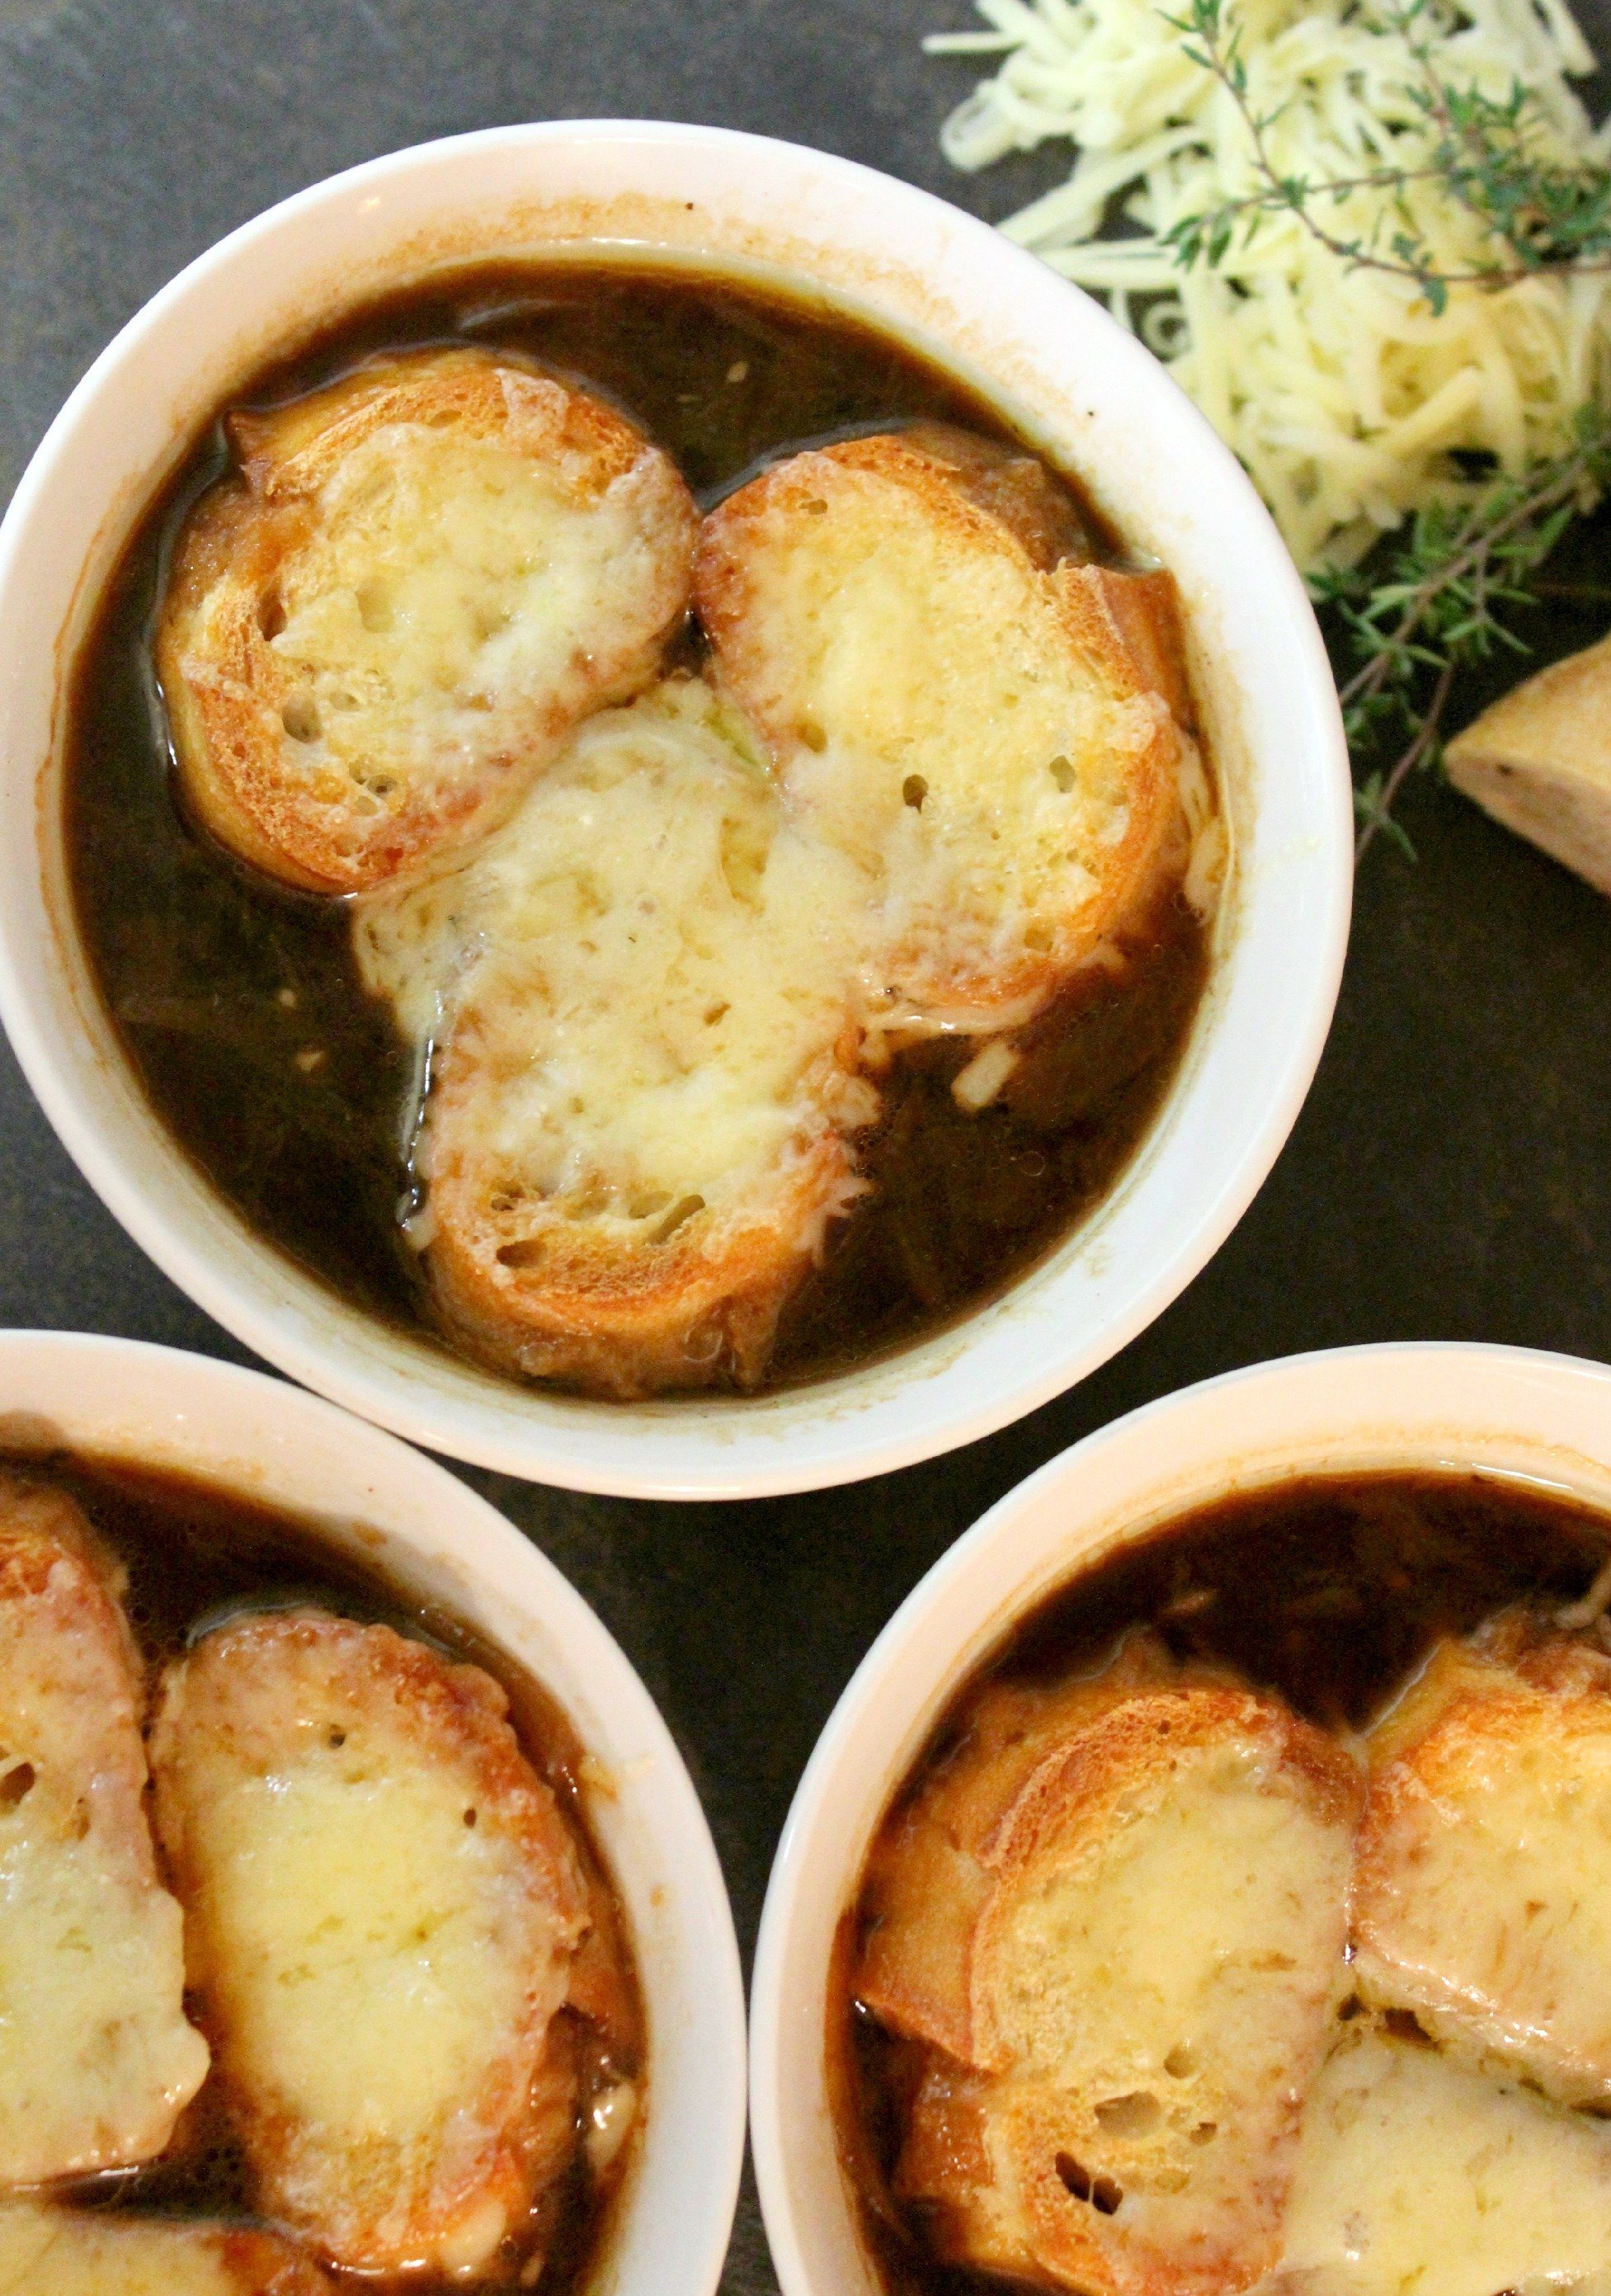 Fargo Foodie Fantastic Fun Fare: FRENCH ONION SOUP rough draft